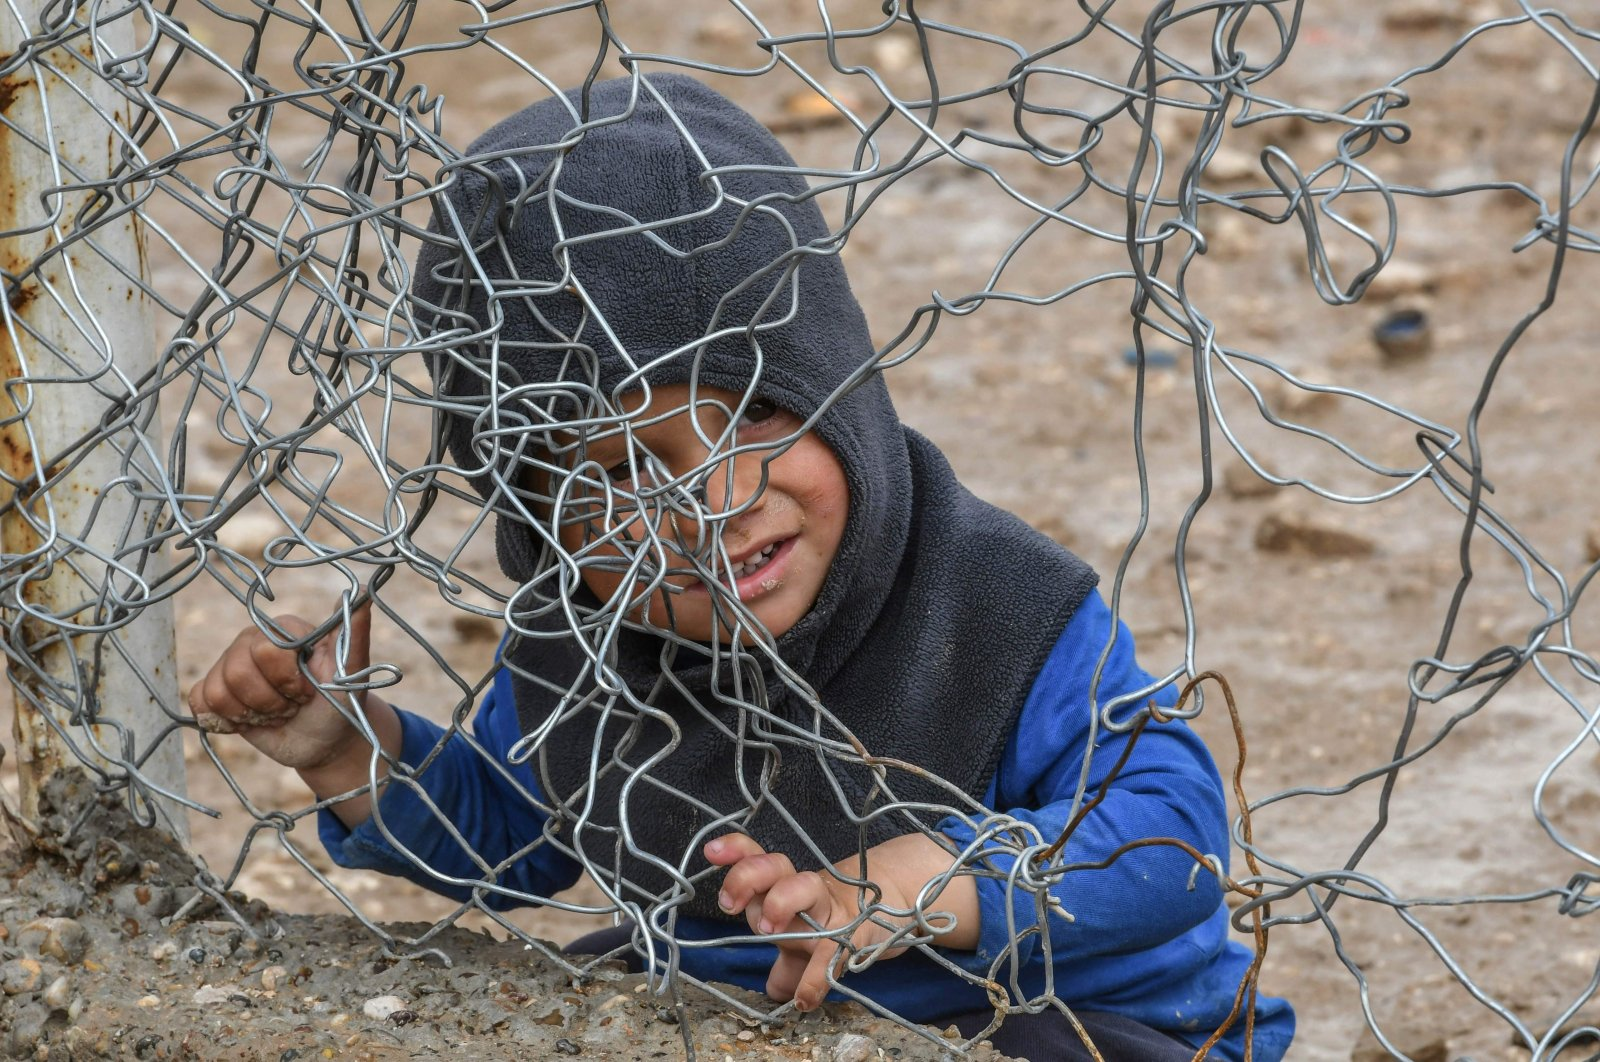 A child sits behind a wire fence in al-Hol camp, which houses relatives of Daesh terror group members, in al-Hasakah governorate in northeastern Syria, March 28, 2019. (AFP Photo)